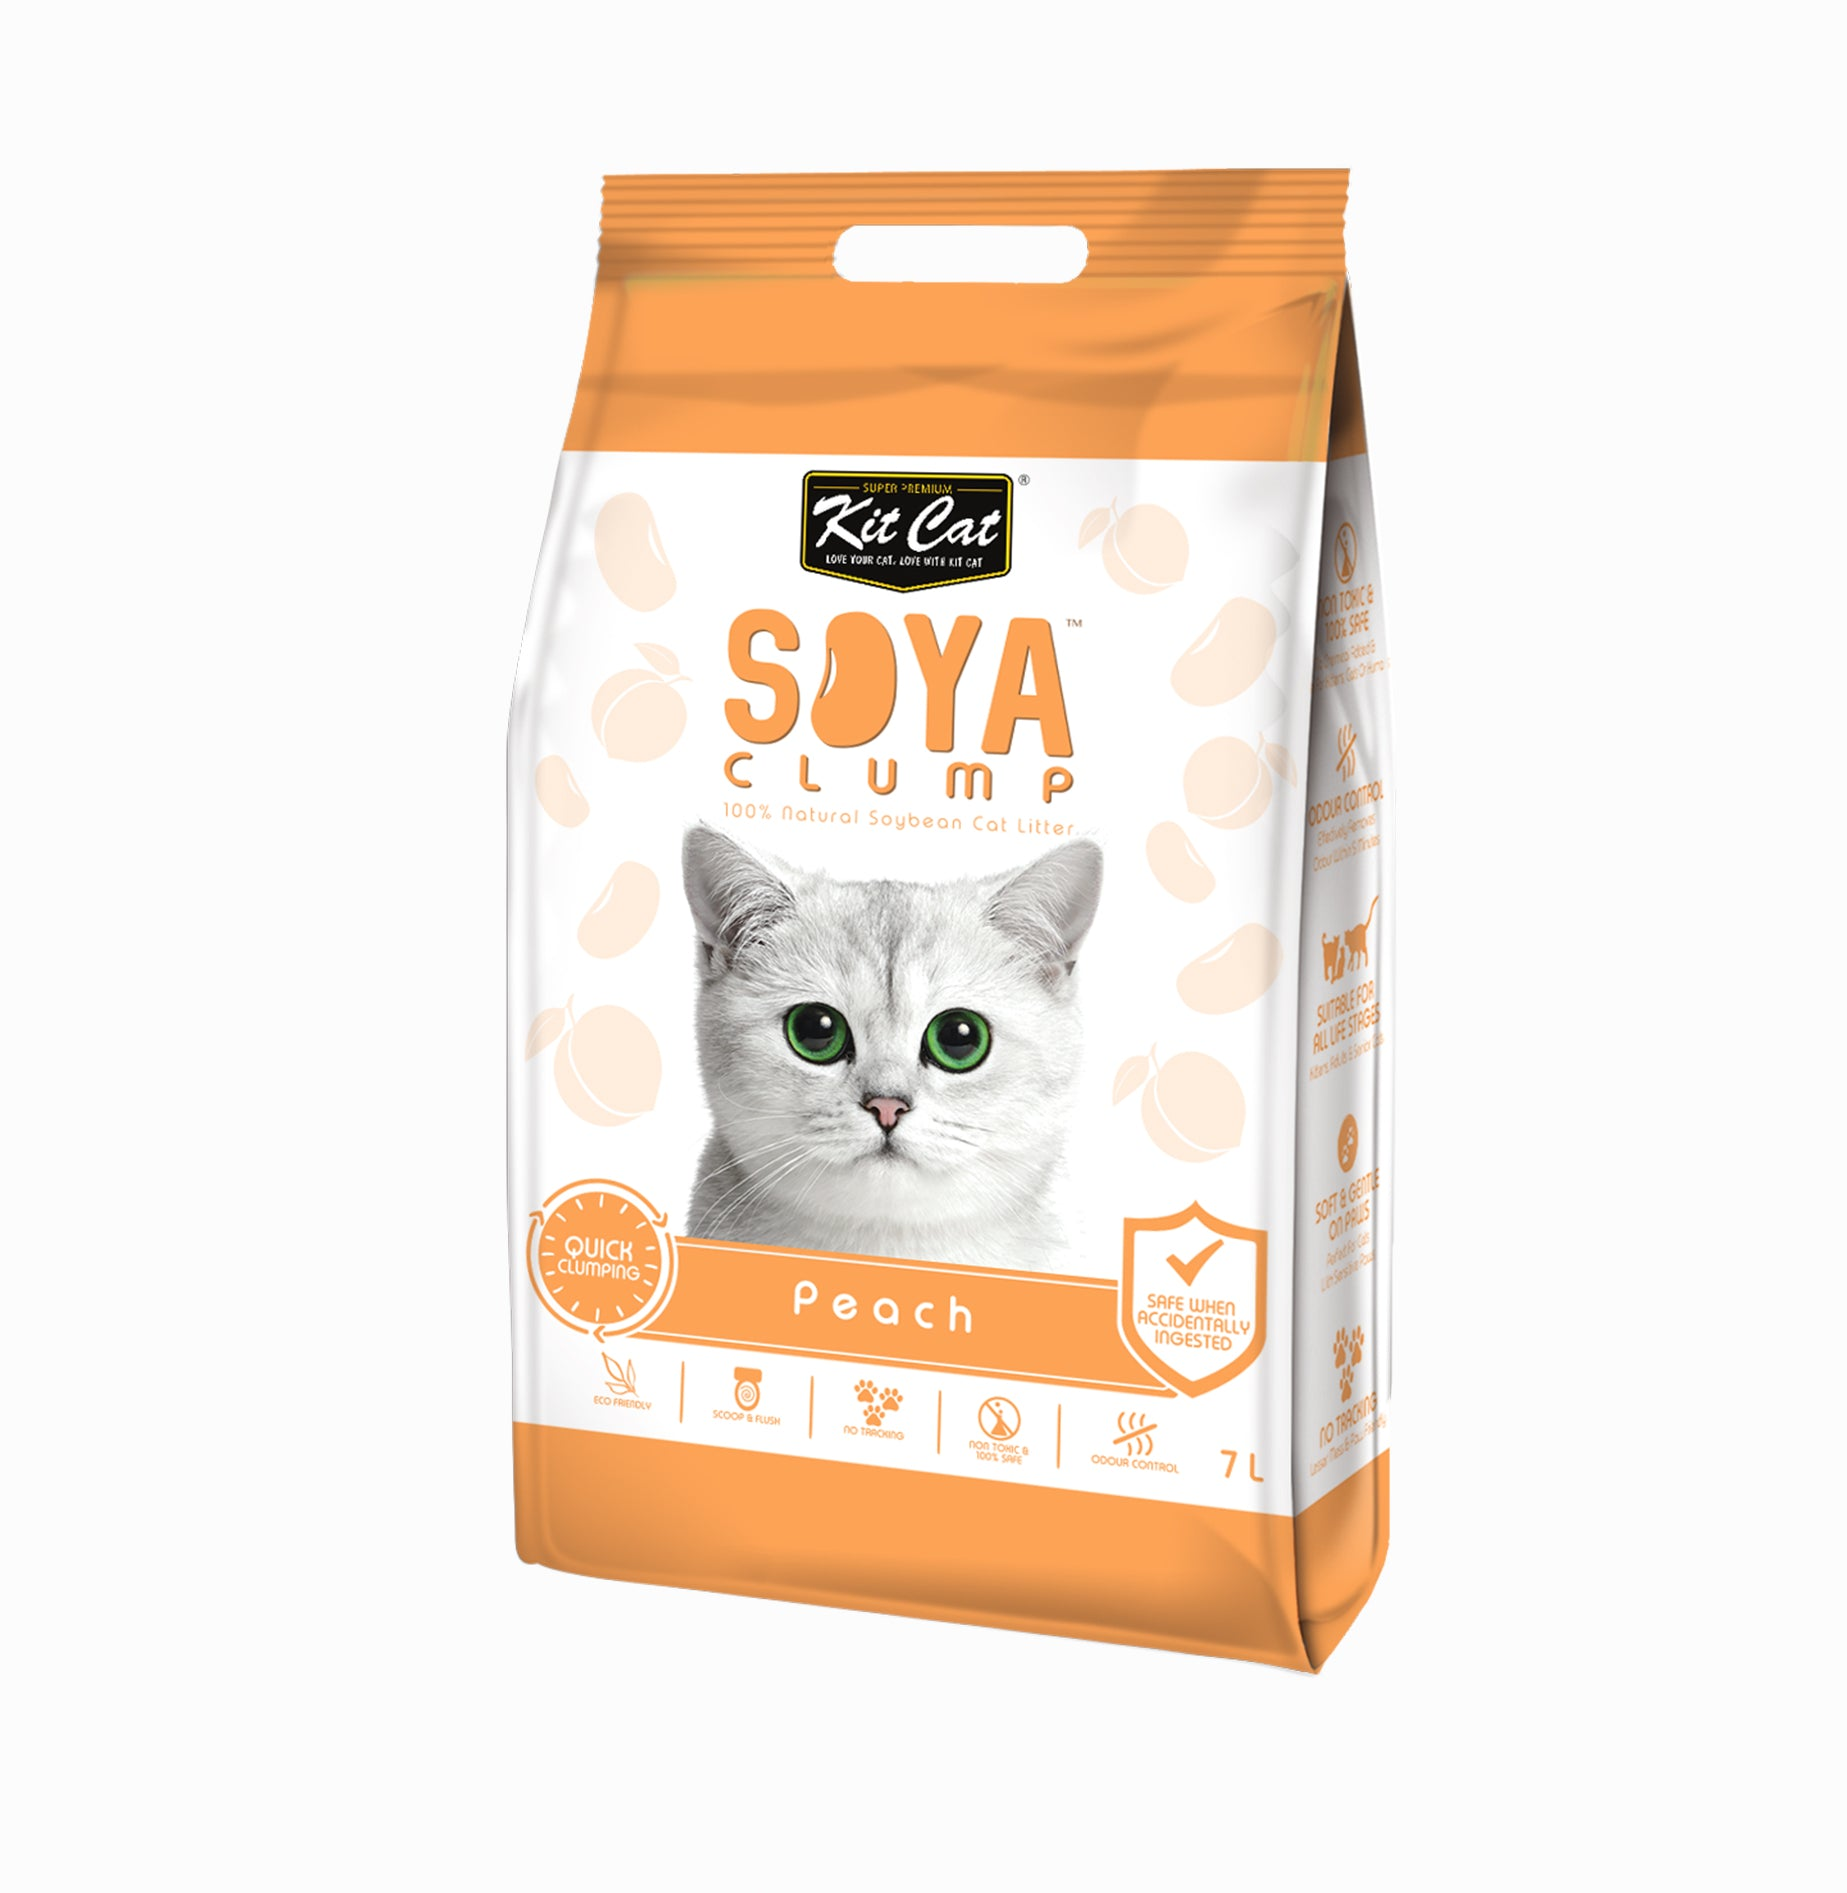 Kit Cat - Soya Clump Cat Litter - 2,8kg- Peach - Woofworths Premium Online Pet Supplies